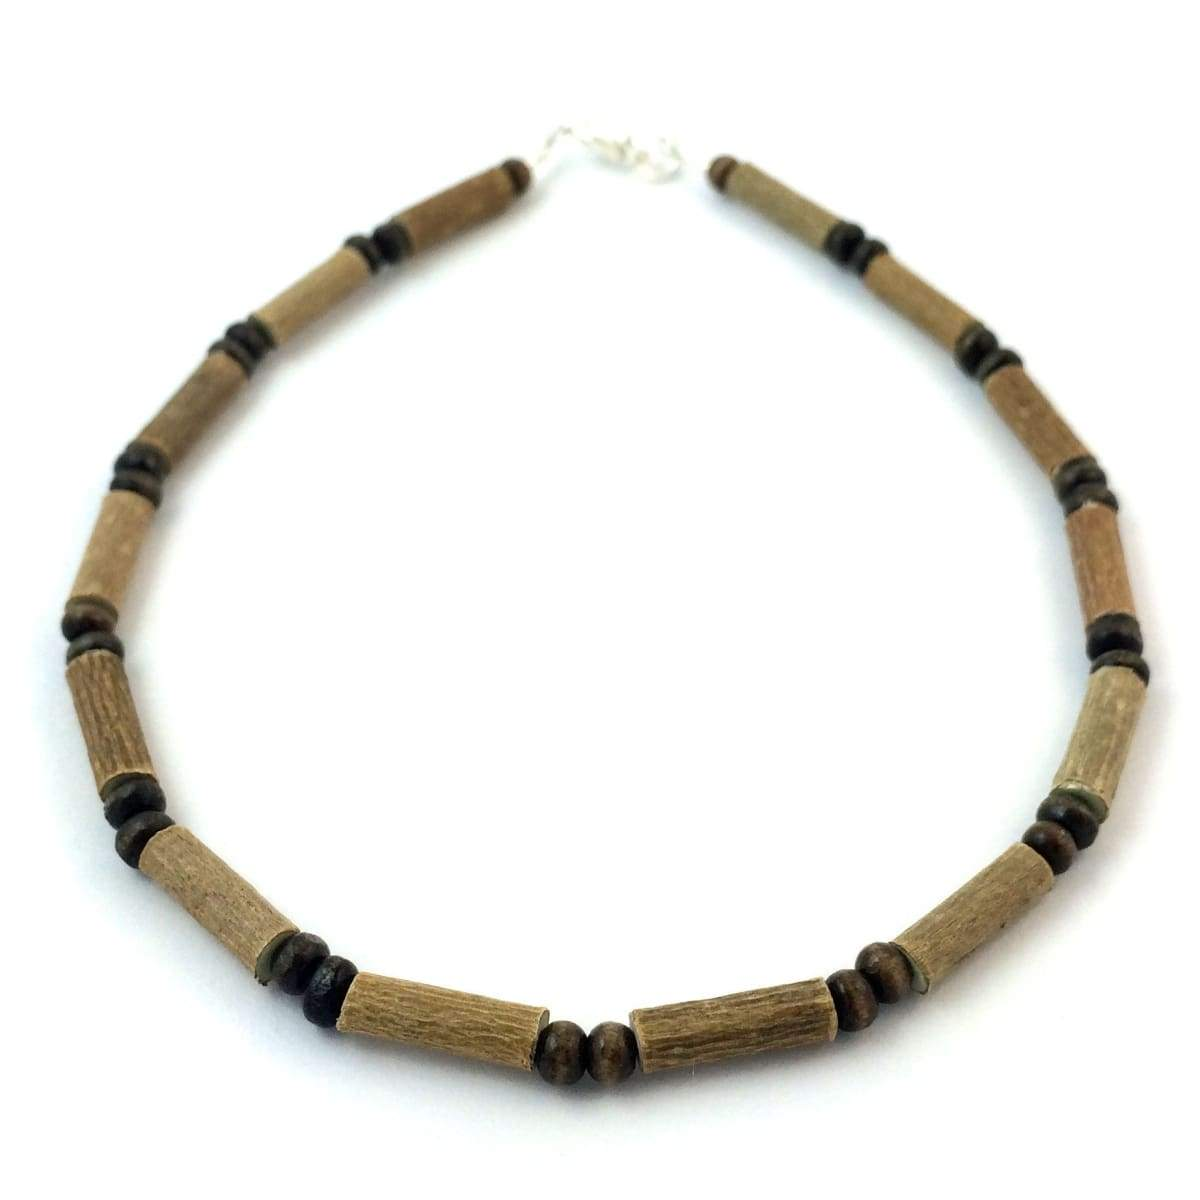 Hazelwood All Brown For Kids - 11 Necklace - Lobster Claw Clasp - Hazelwood Jewelry